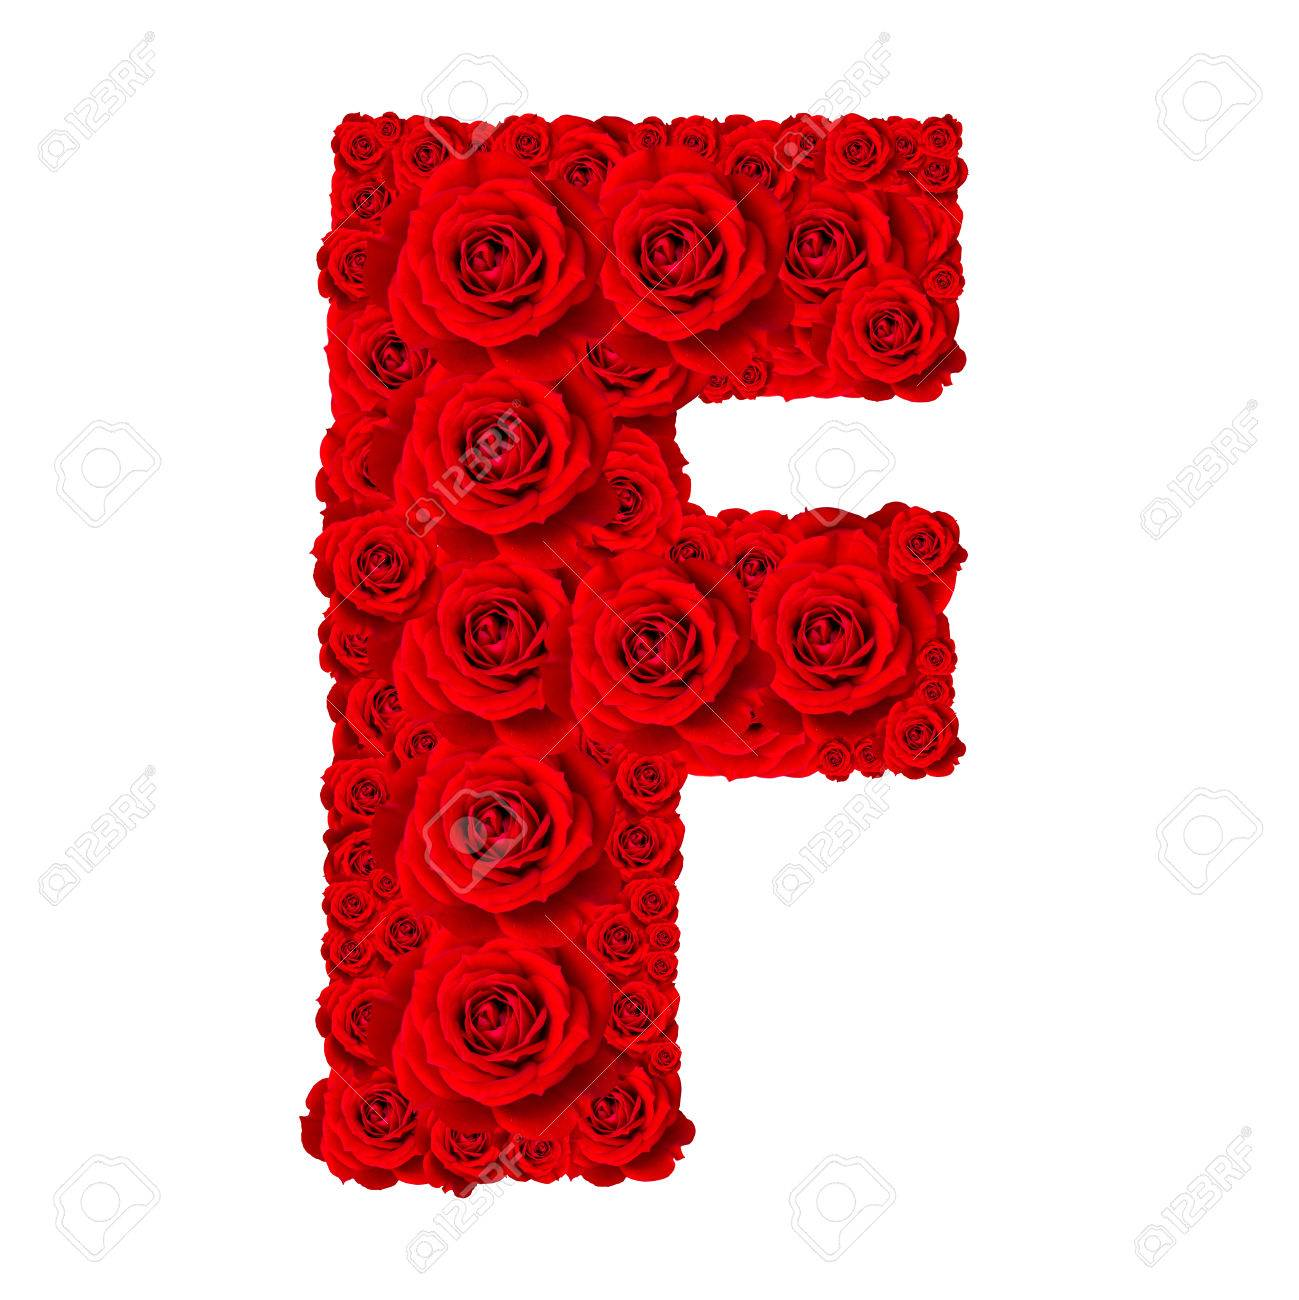 Rose Alphabet Set Alphabet Capital Letter F Made From Red Rose Blossoms Isolated On White